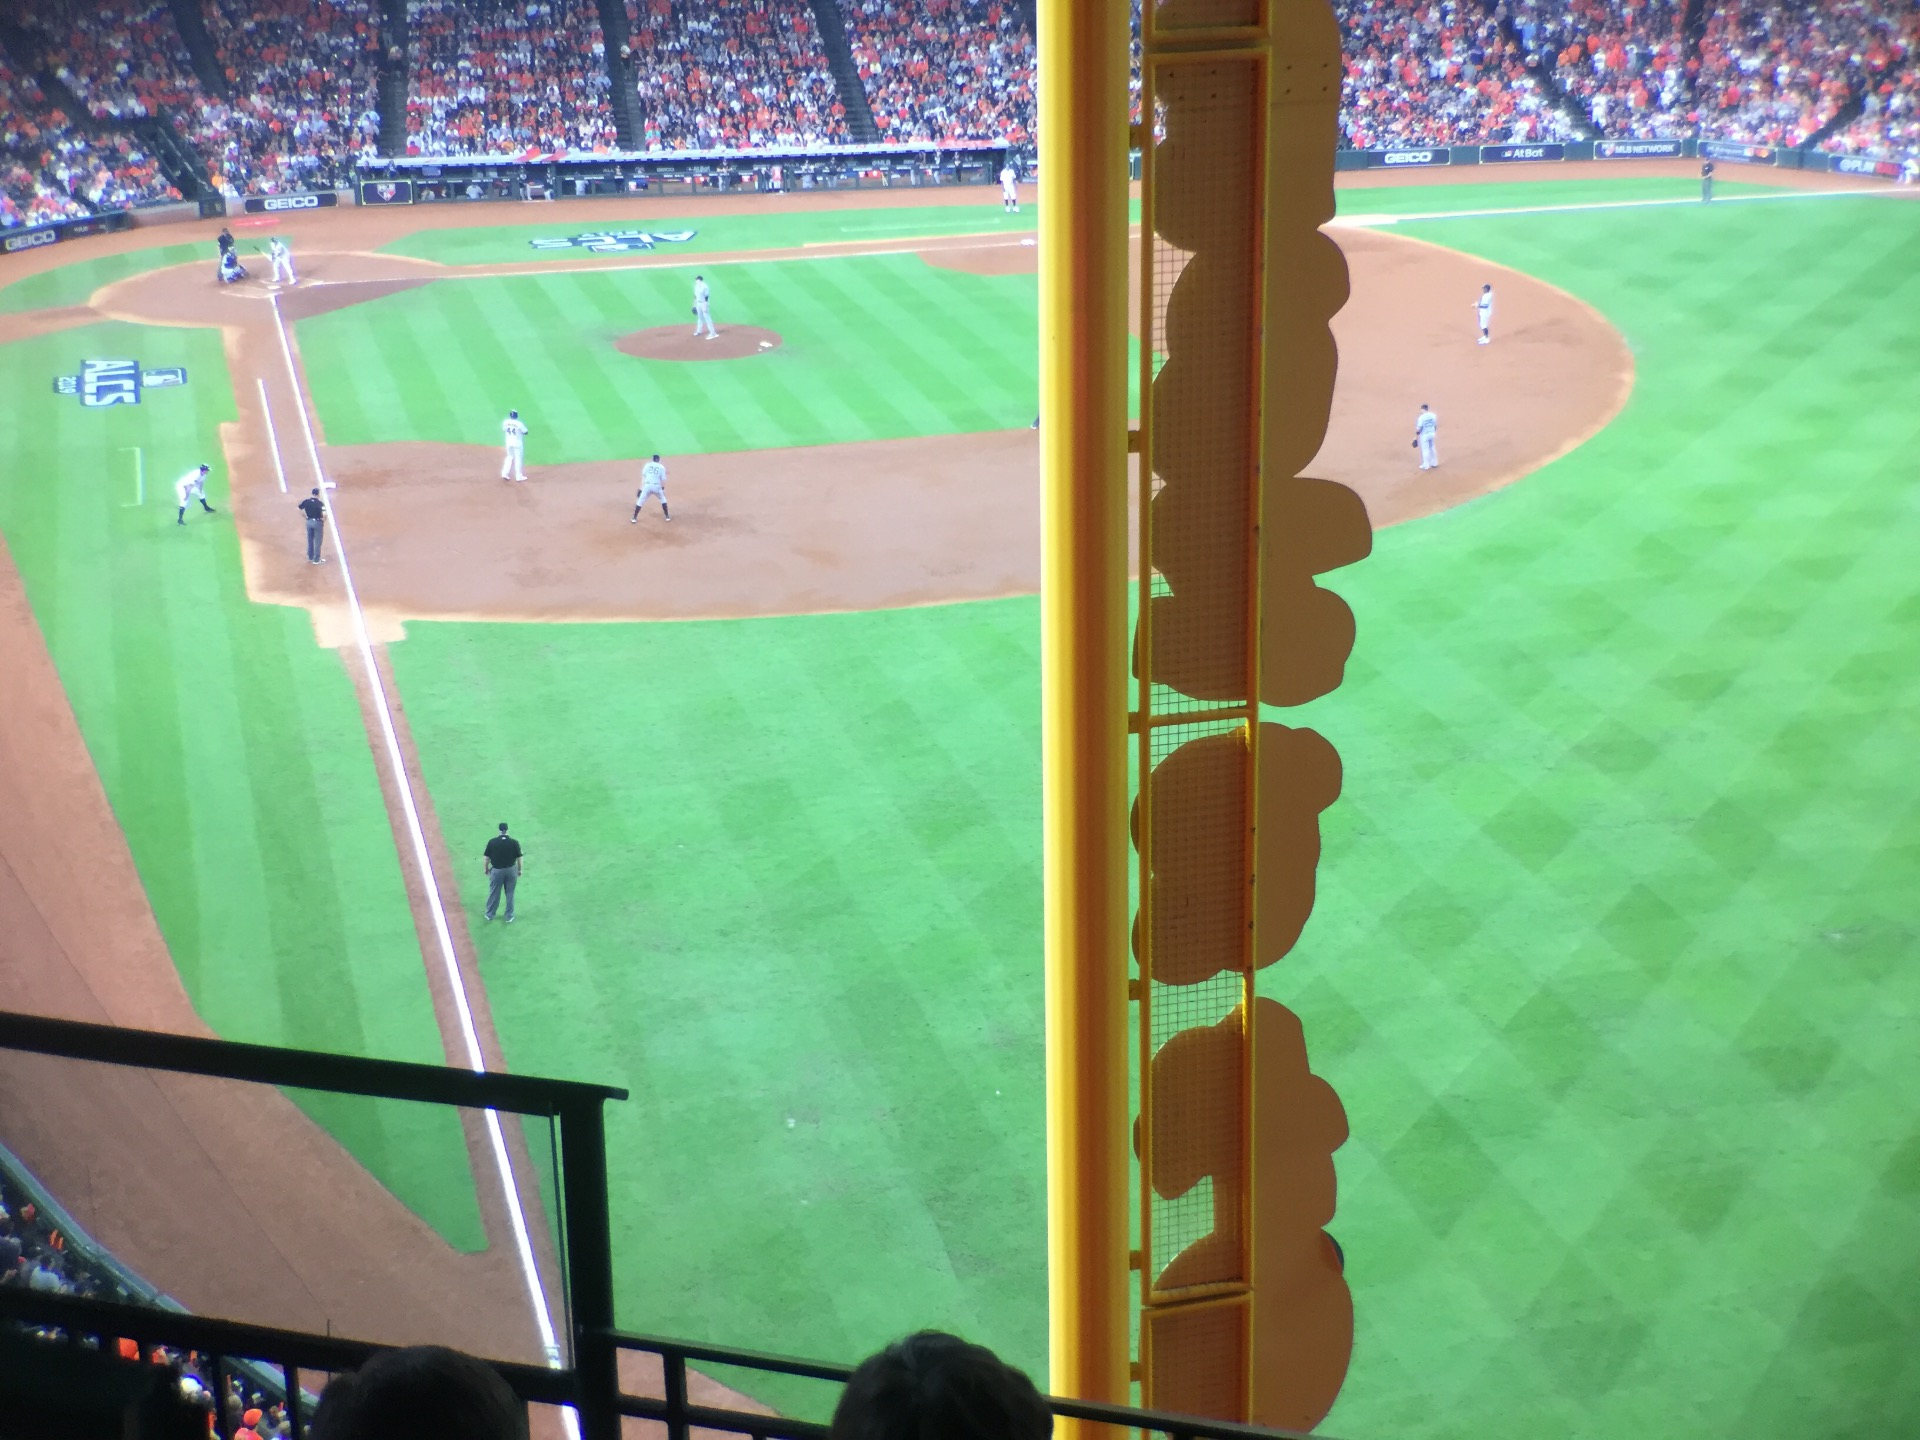 Minute Maid Park Section 337 Row 4 Seat 4